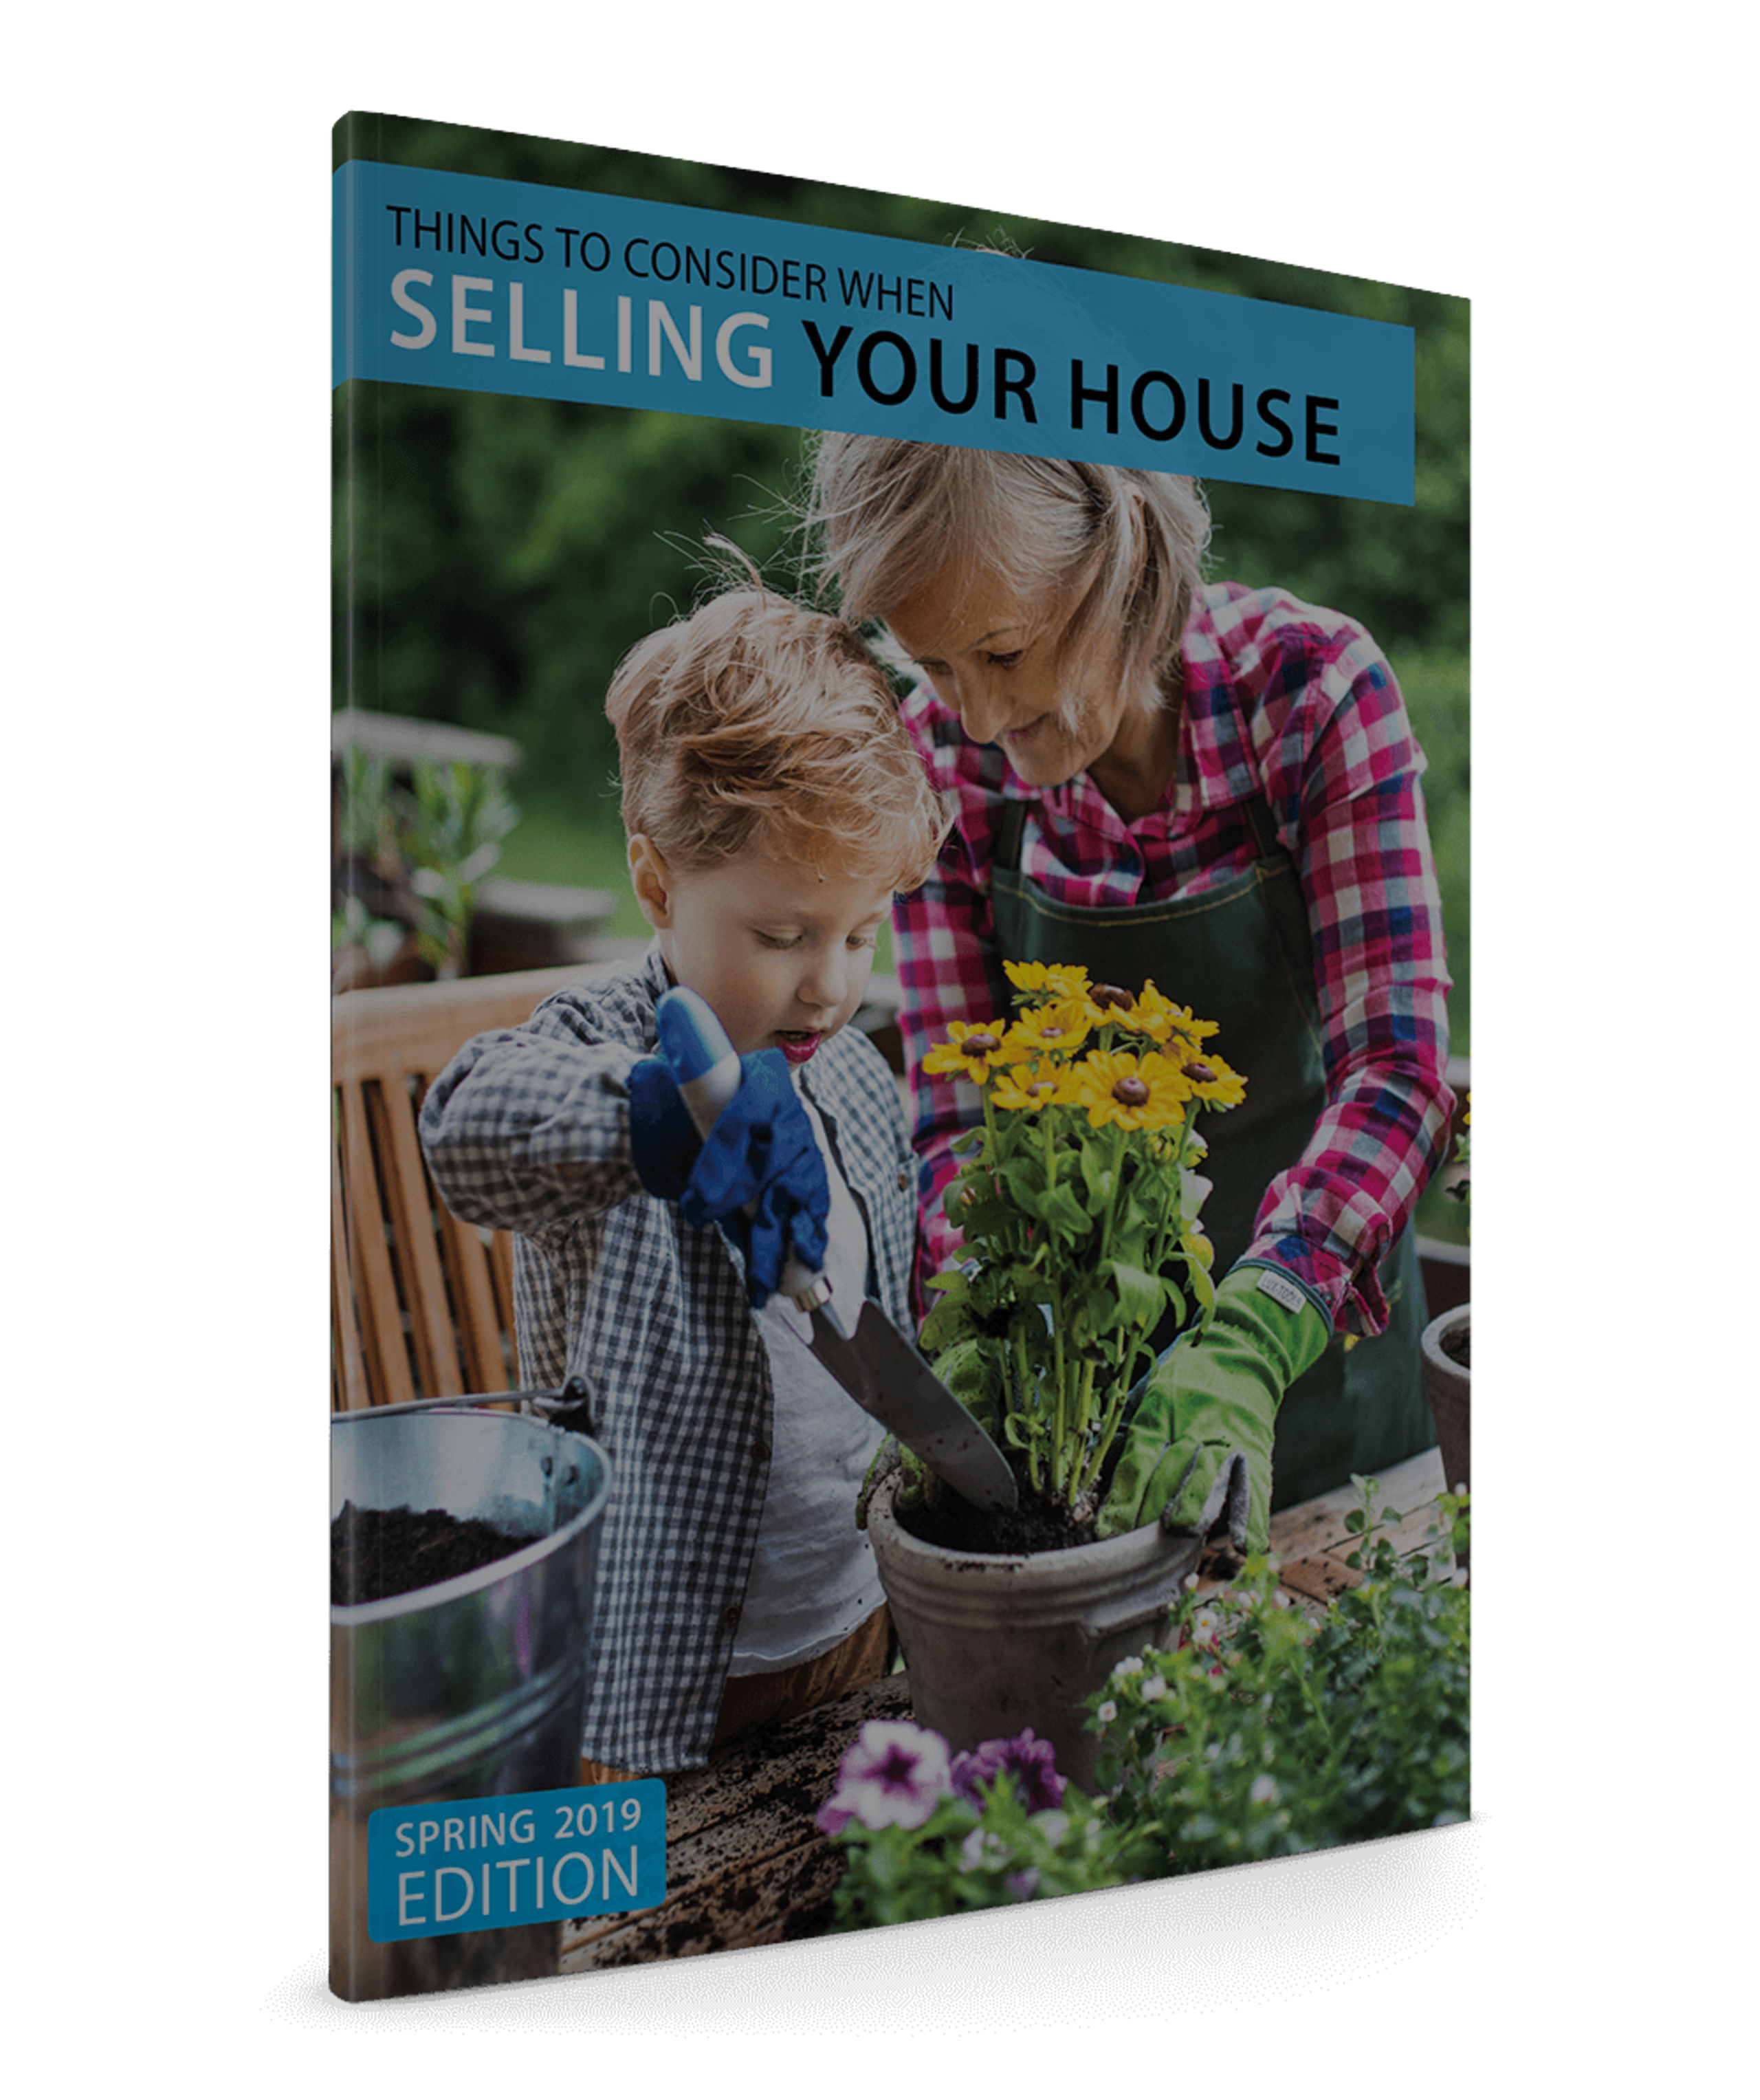 Are You Thinking About Selling Your House Soon?